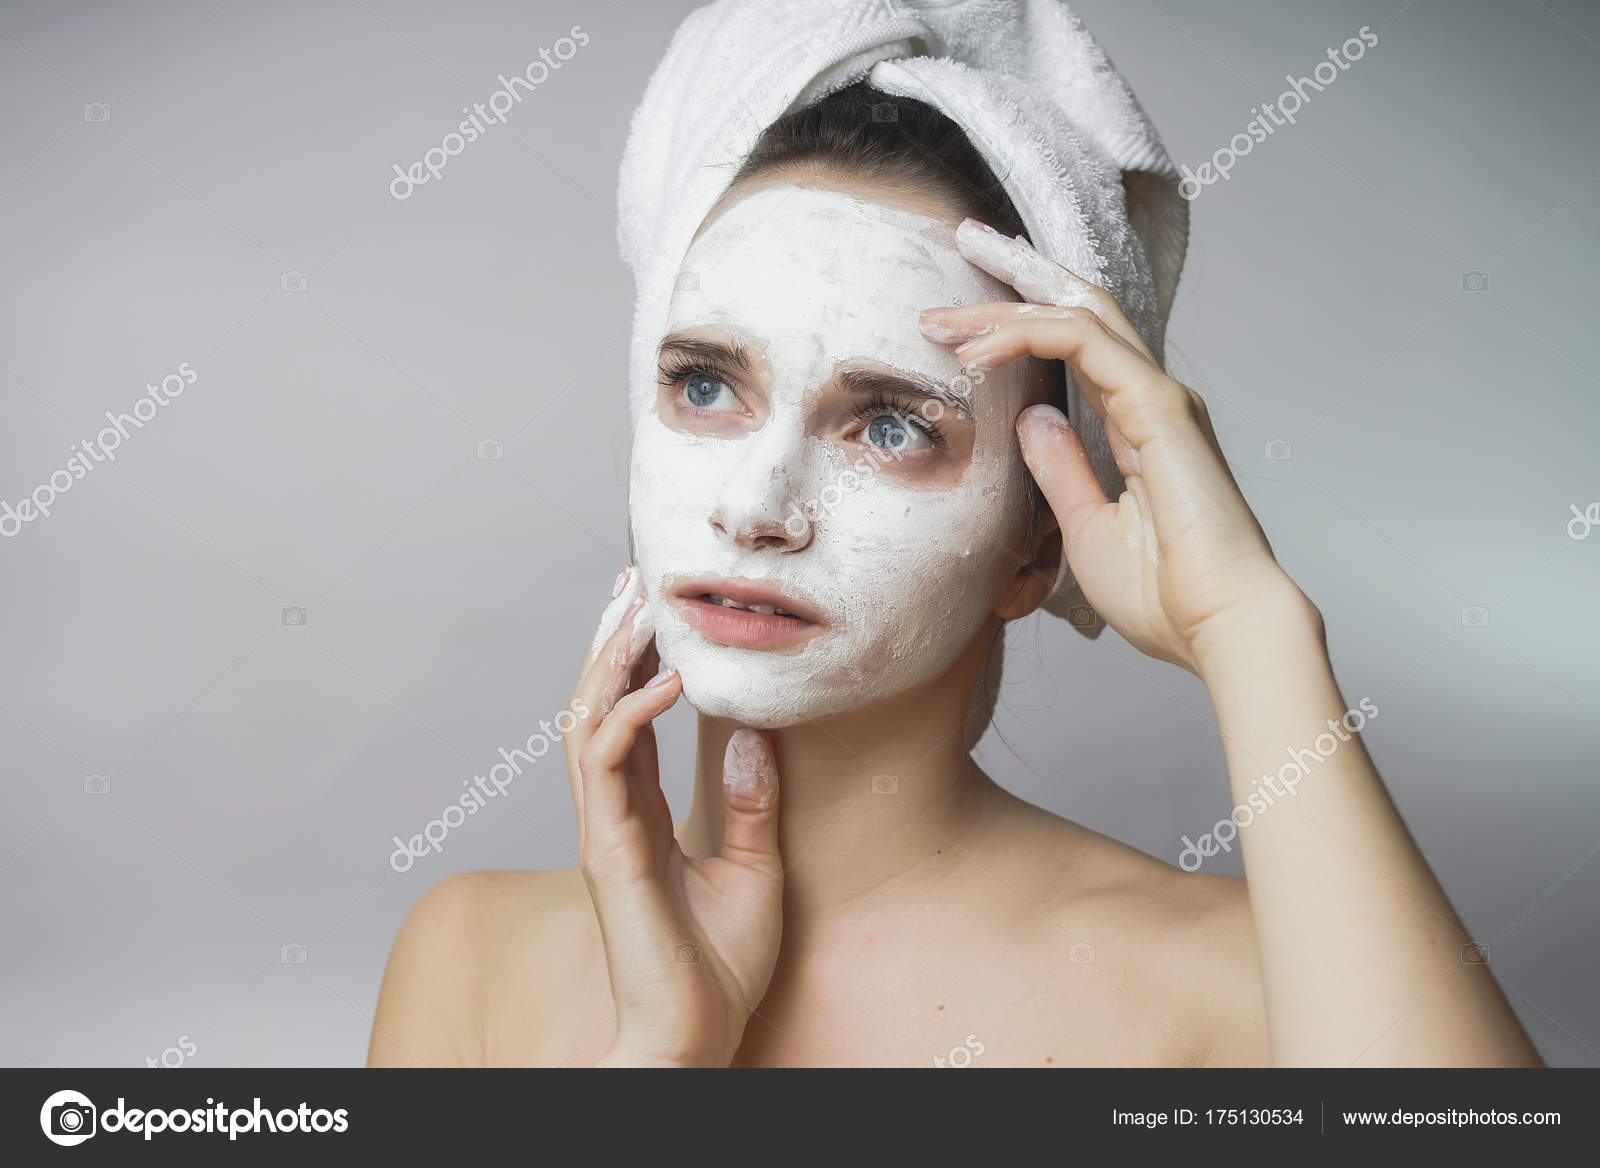 Beauty teen,woman like white skin care mask on face– stock image